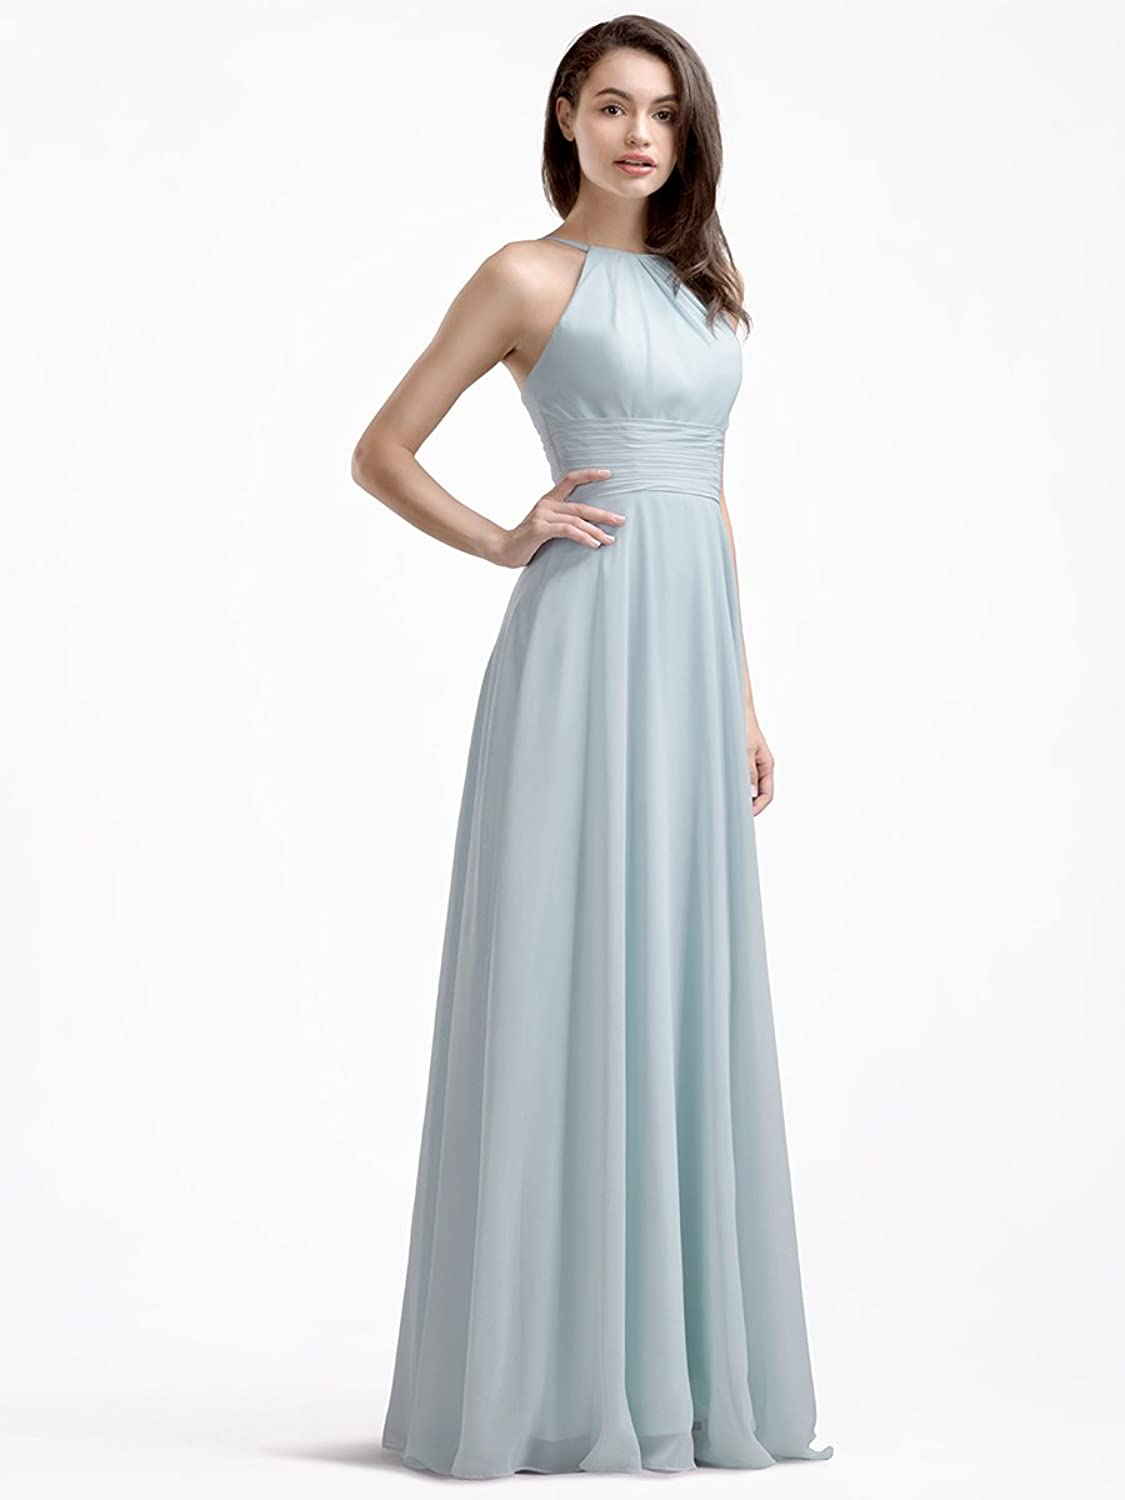 AWEI BRIDAL A-Line Long Bridesmaid Dress Chiffon Prom Dress with Round Neck at Amazon Womens Clothing store: